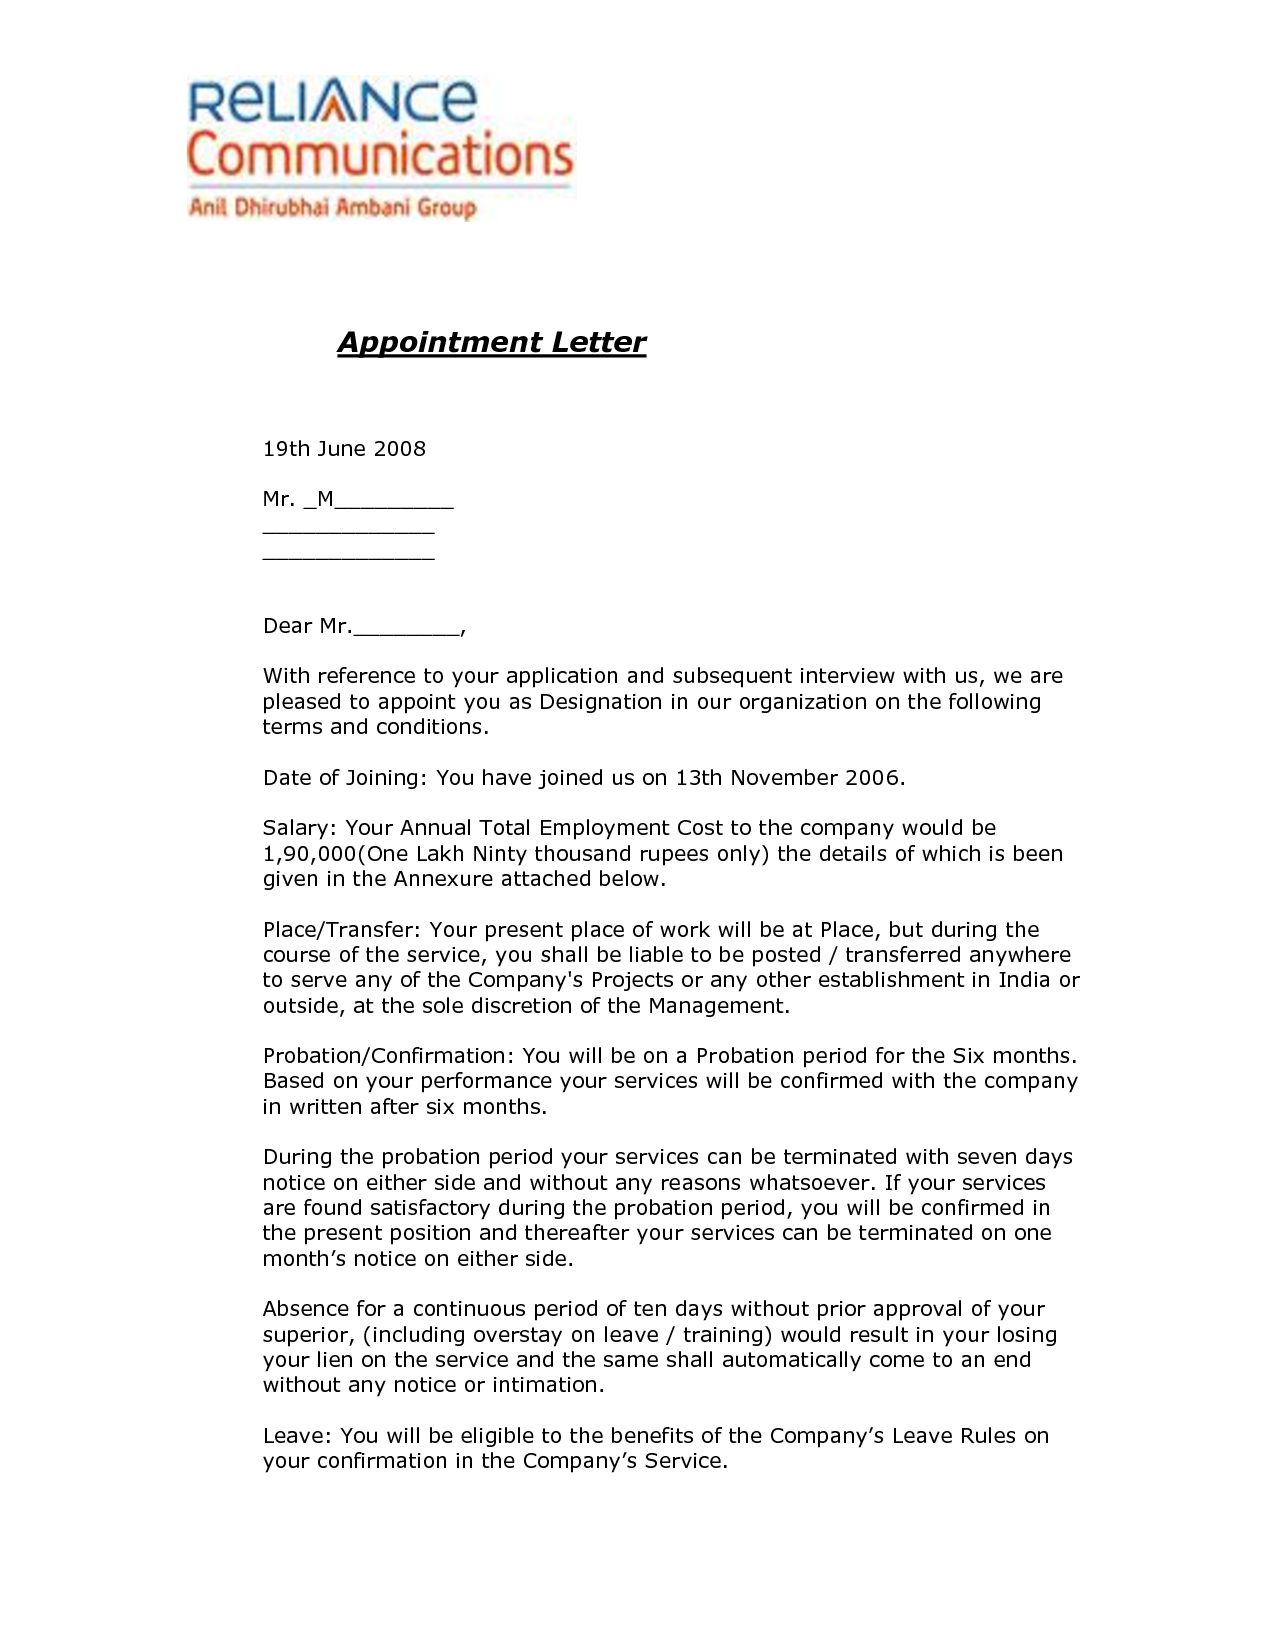 Joining letter format for offer letter format legal joining letter format for offer letter format altavistaventures Images